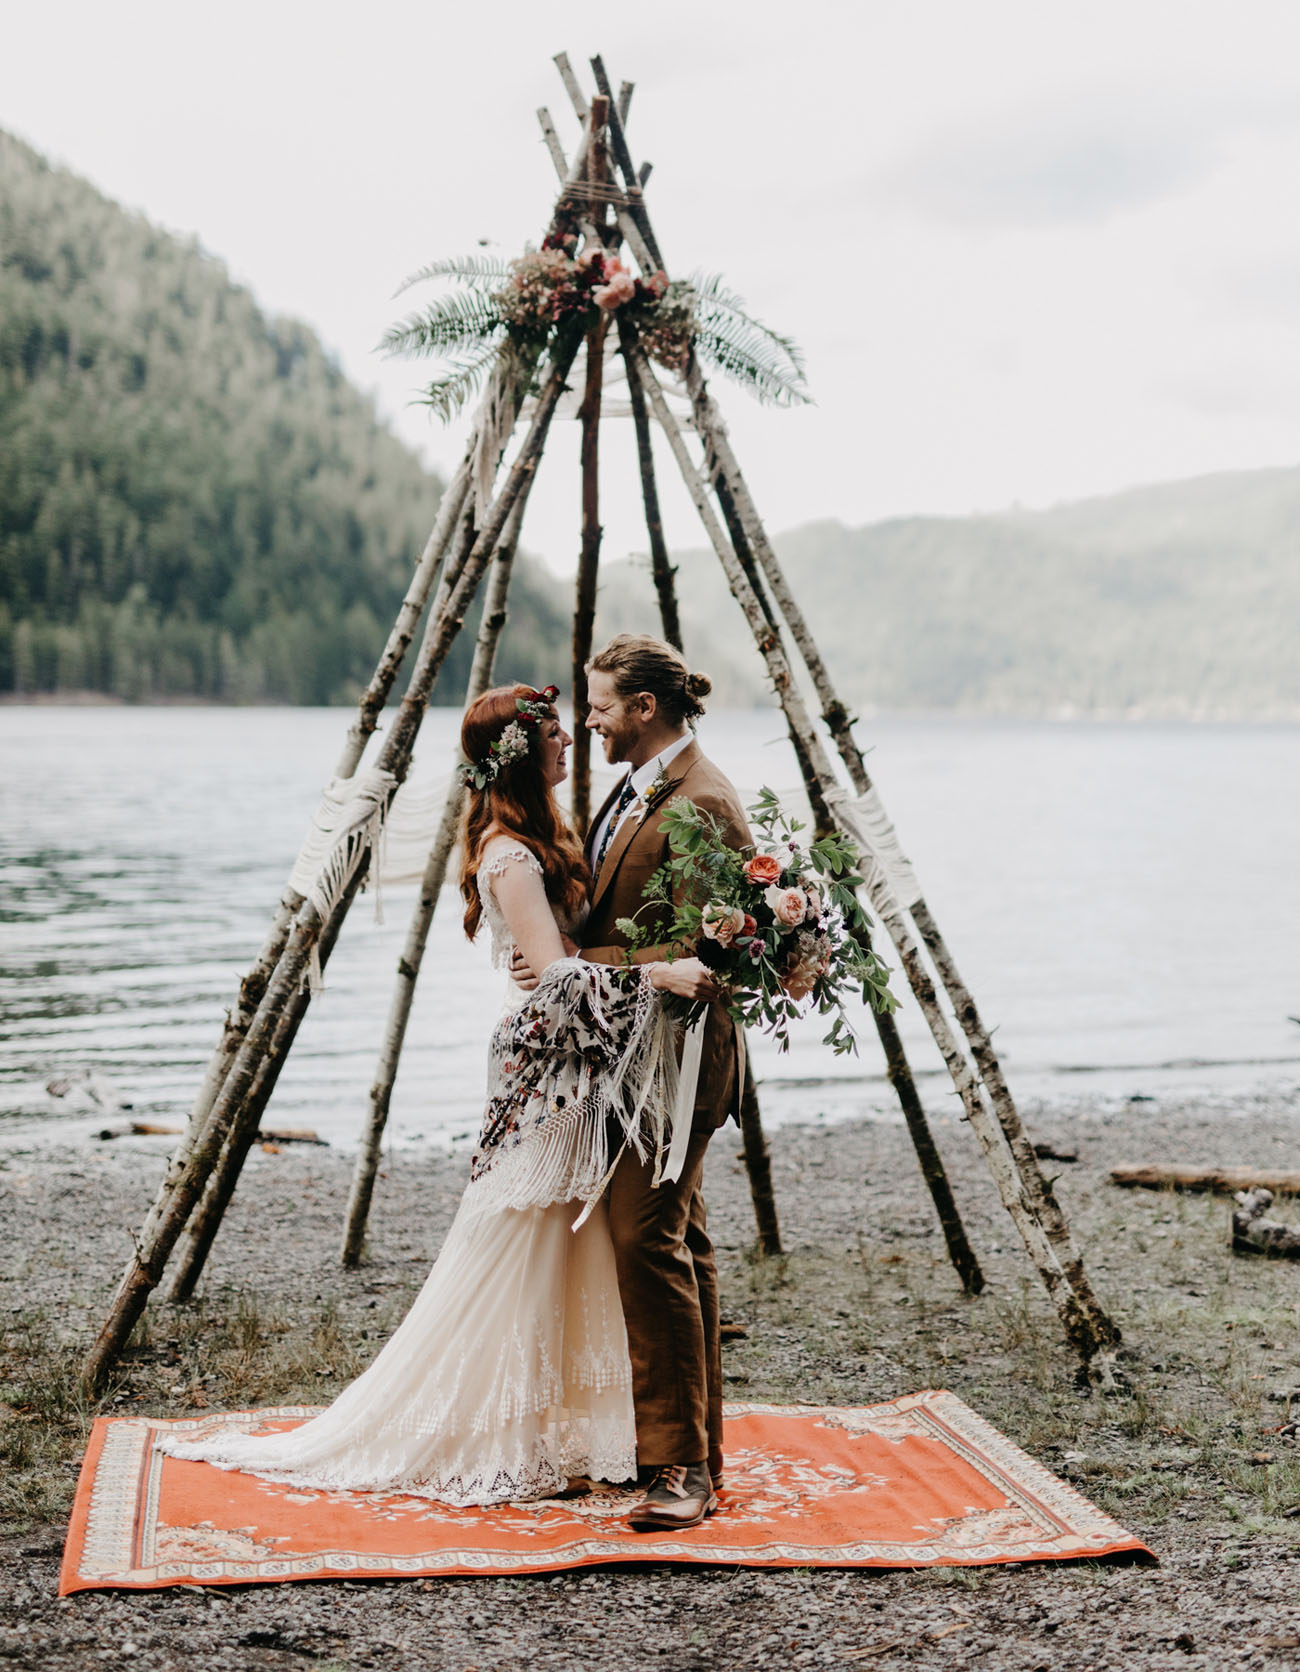 I Love You S More Favorite Camp Wedding Ideas For The Outdoorsy Types Green Wedding Shoes